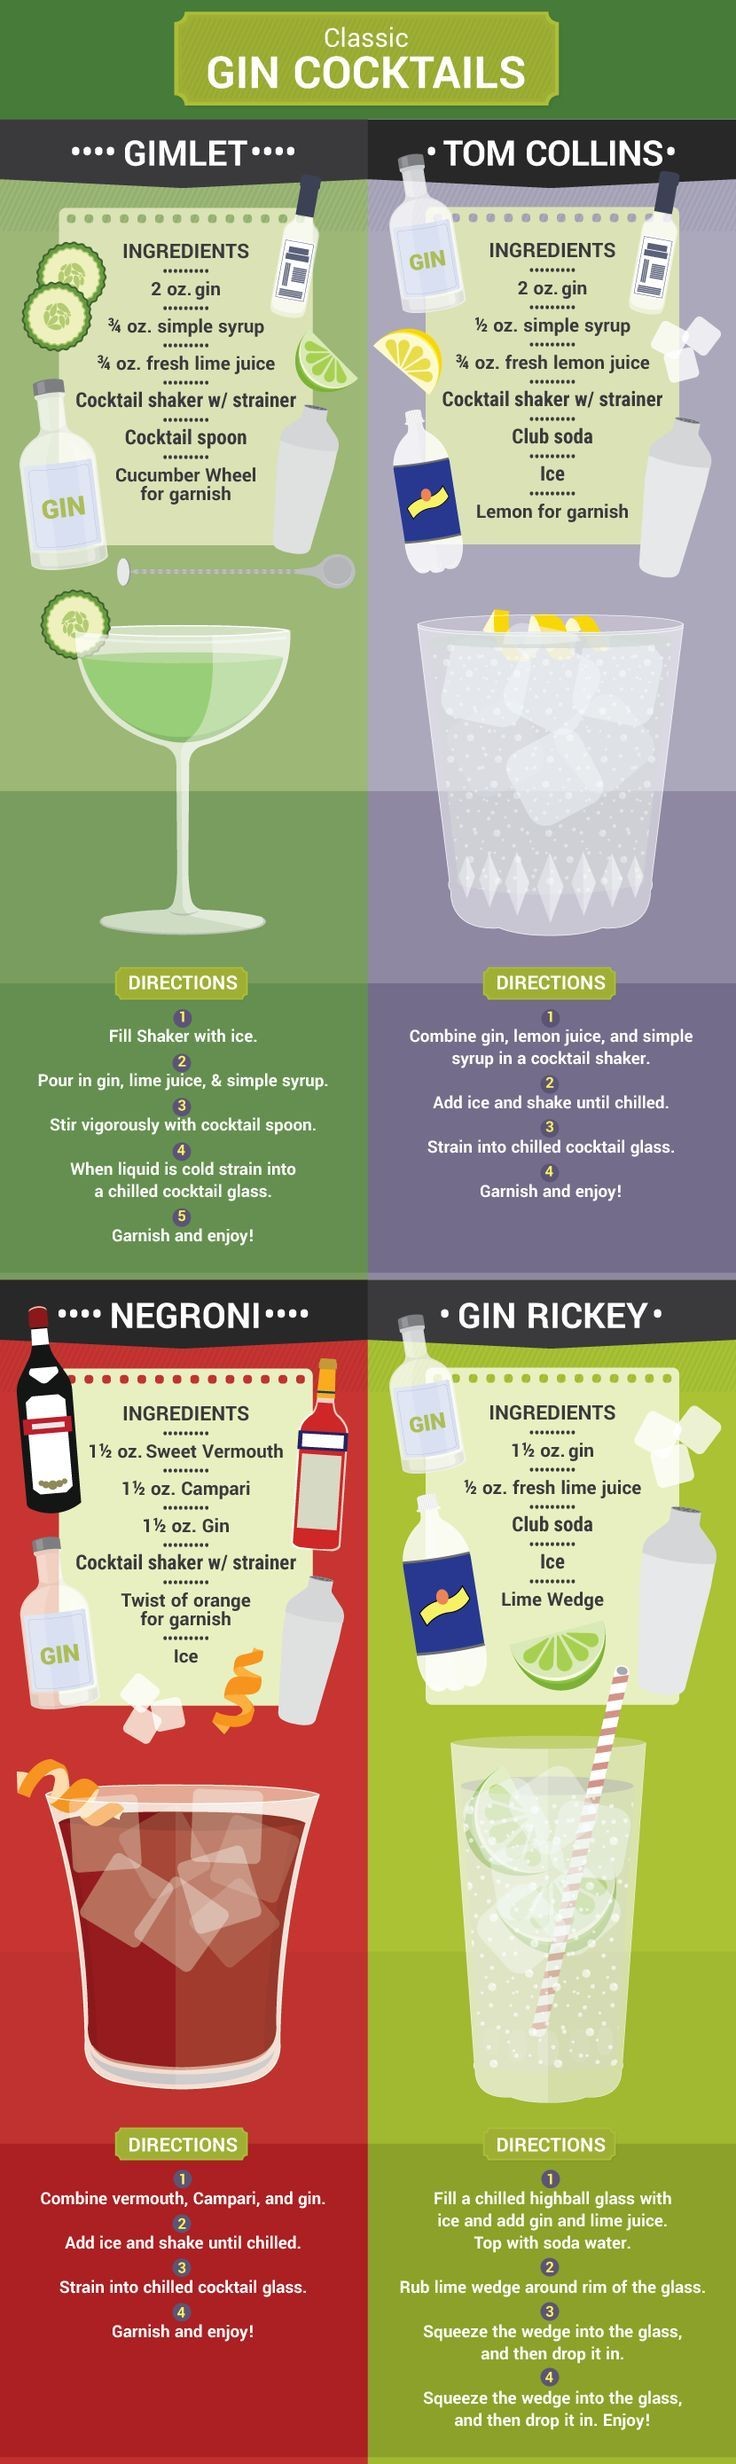 Learn how various botanicals such as juniper berries are used to flavor gin, resulting in a much different taste among different brands!